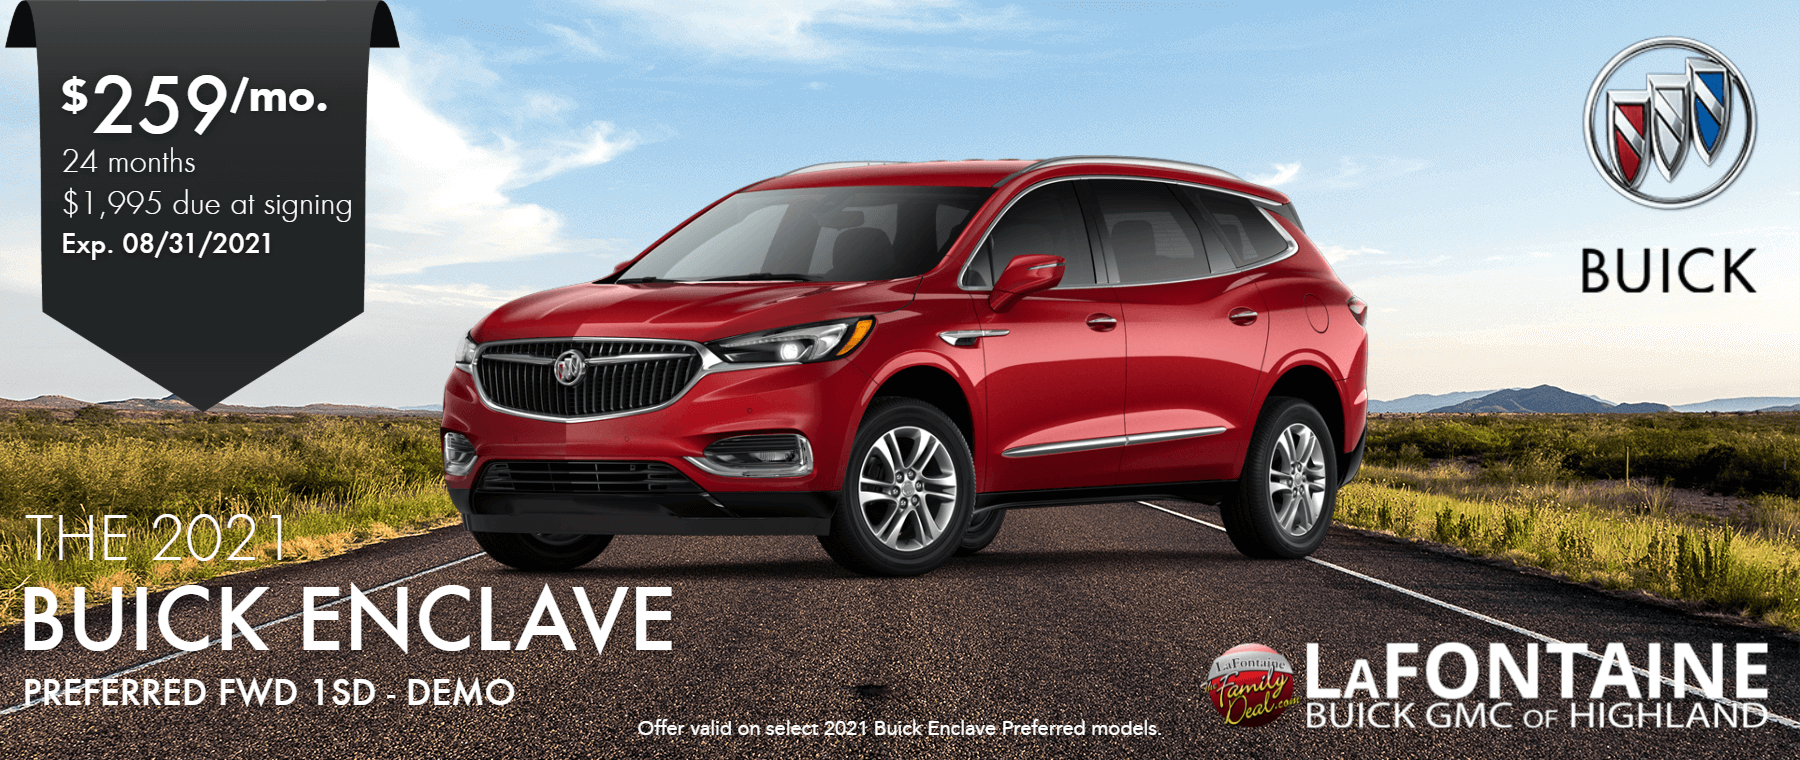 2021_Buick_Enclave_Preferred_Lafontaine of Highland